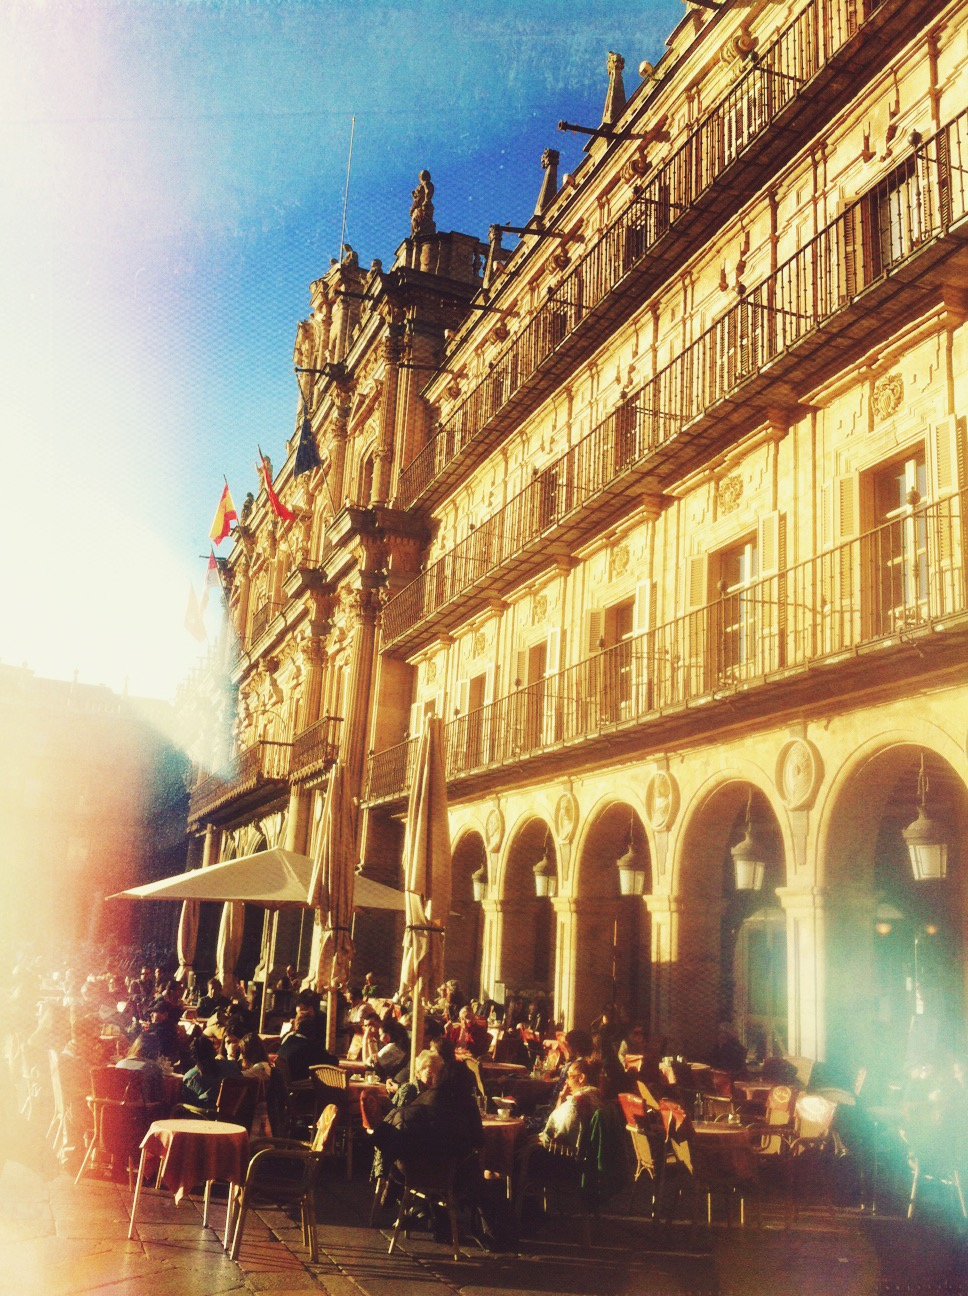 Plaza Mayor de Salamanca, foto tomada con un iPhone 4 y editada en Afterlight